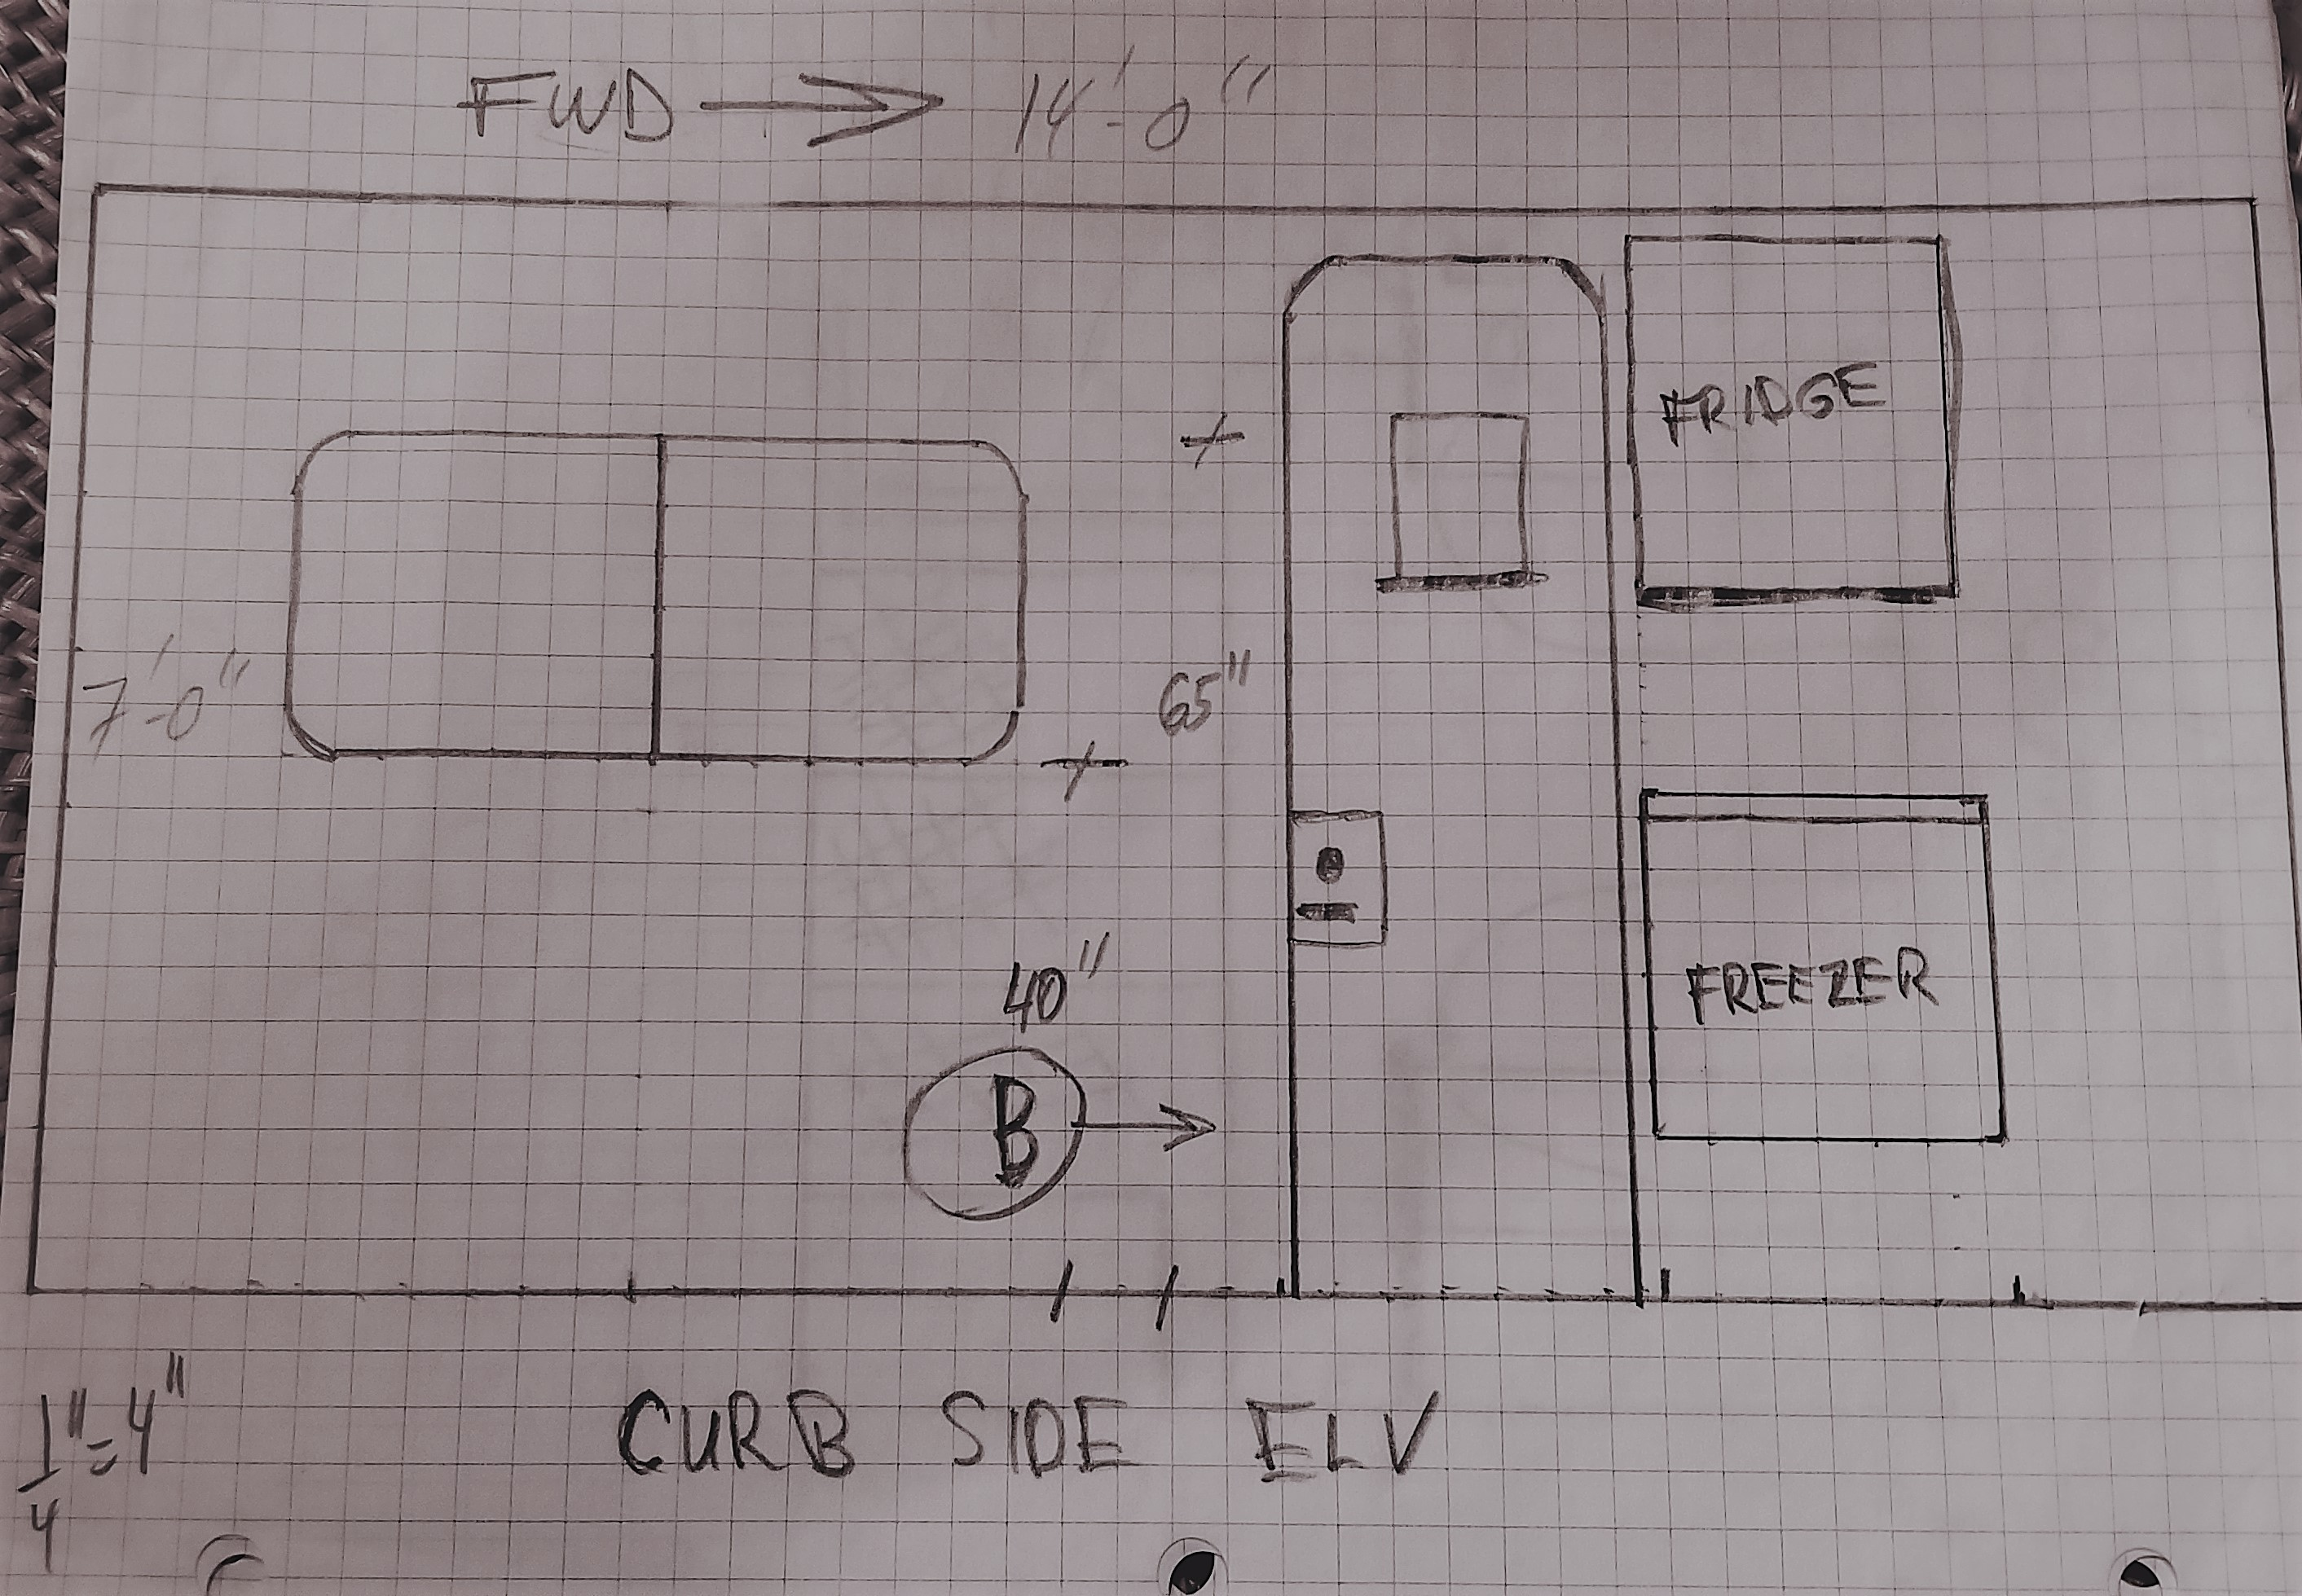 Curb side frg/frzr section